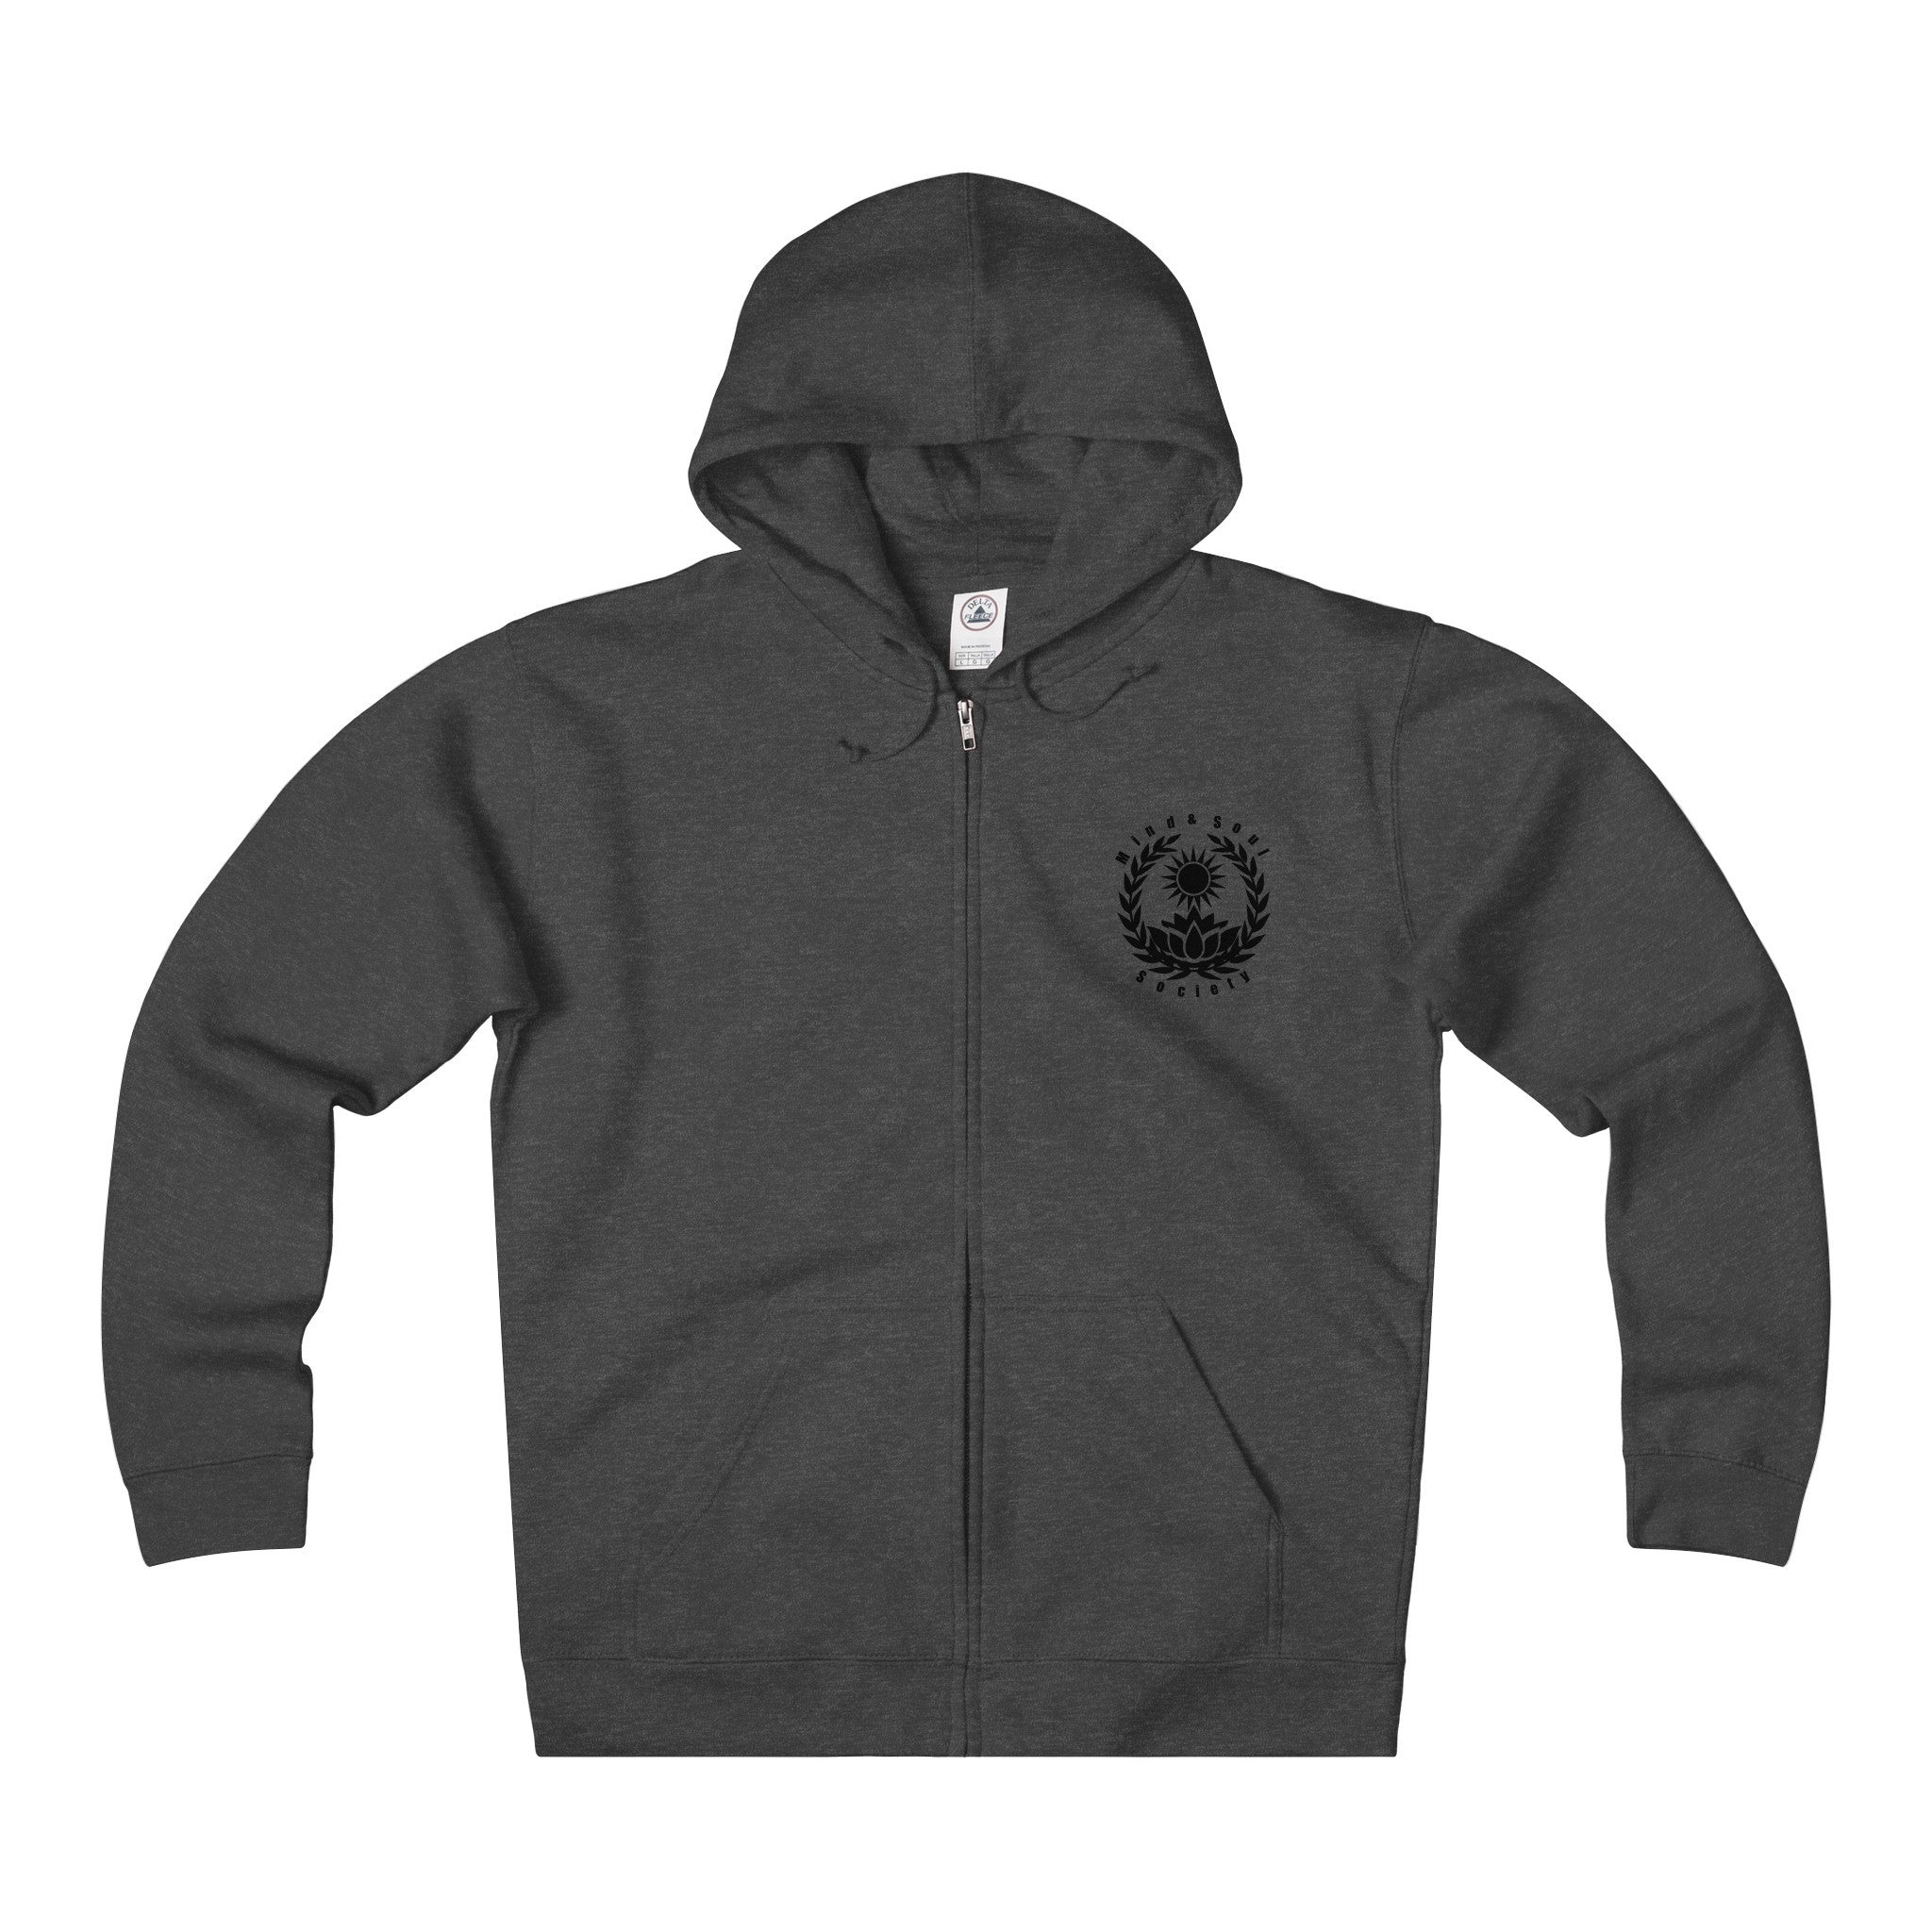 Mind&Soul Society Black Design Jacket (6 colors available)